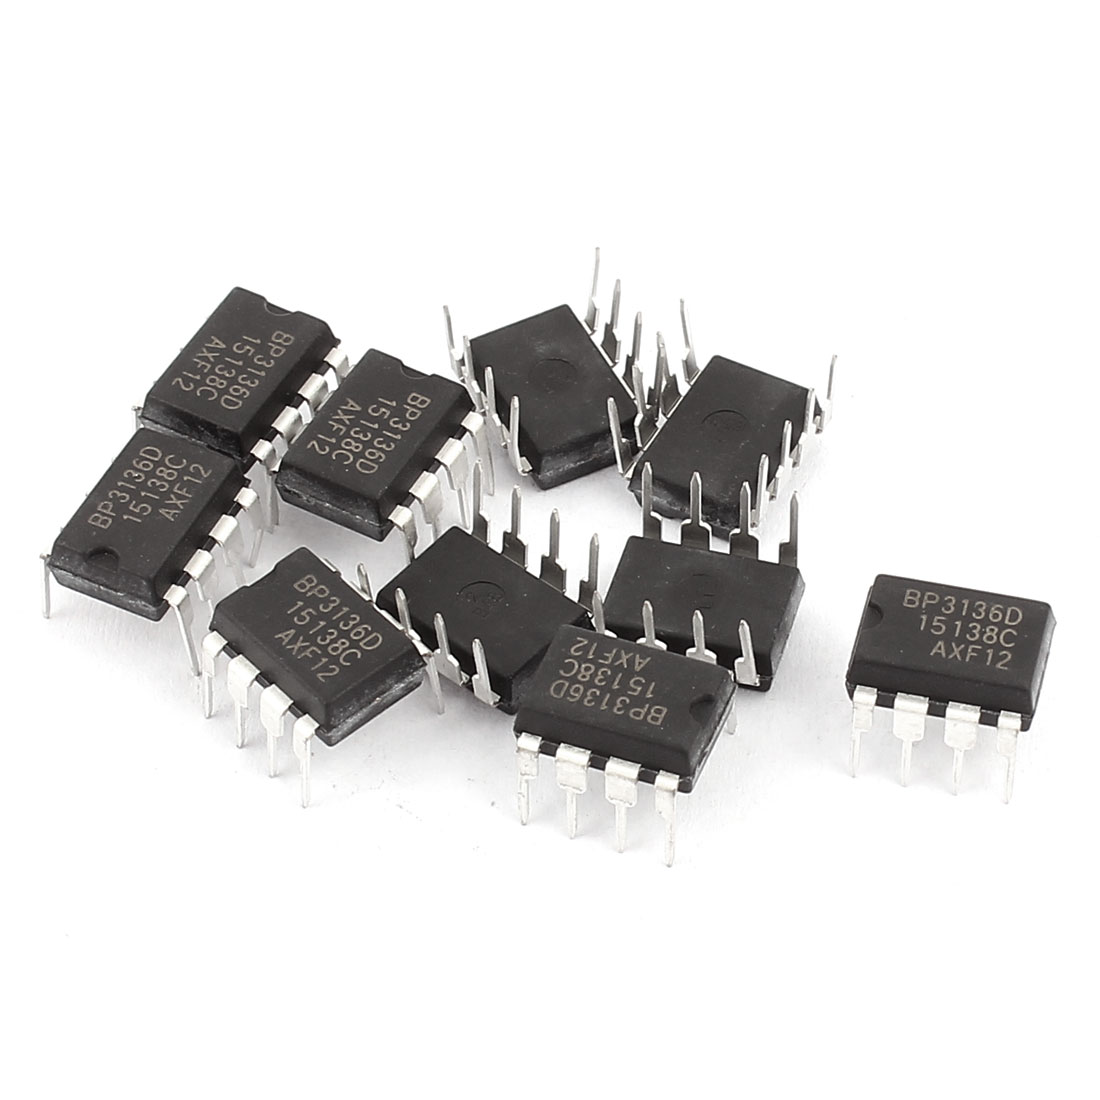 10Pcs BP3136D Replacement DIP-8 Package Type SMT LED Driver IC